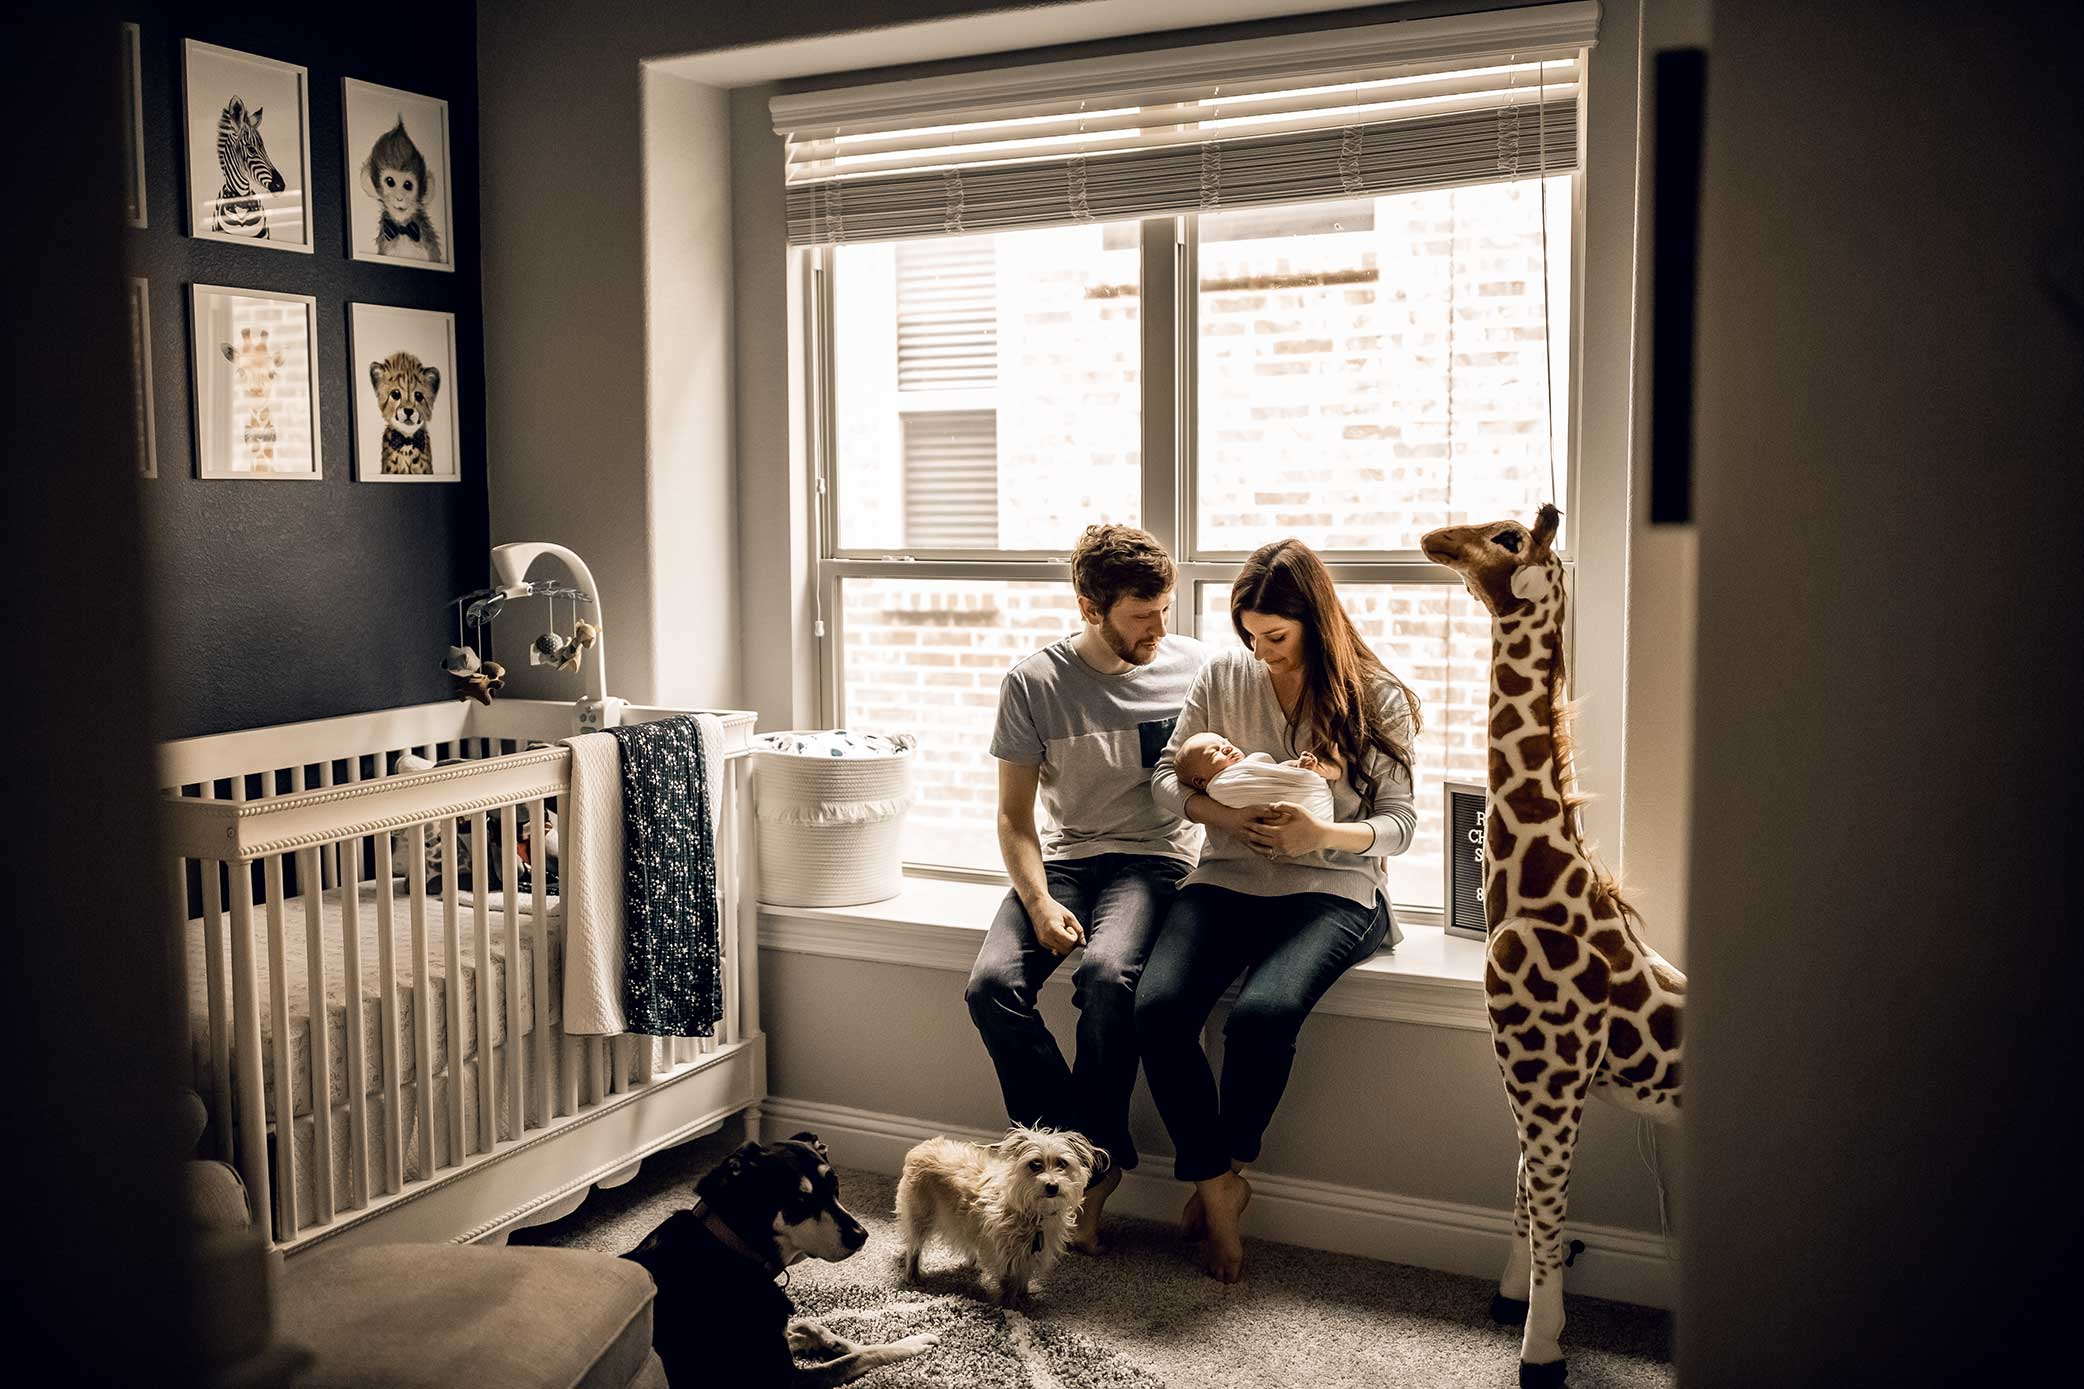 shelby-schiller-photography-lifestyle-in-home-newborn-animal-nursery-dark-colors.jpg